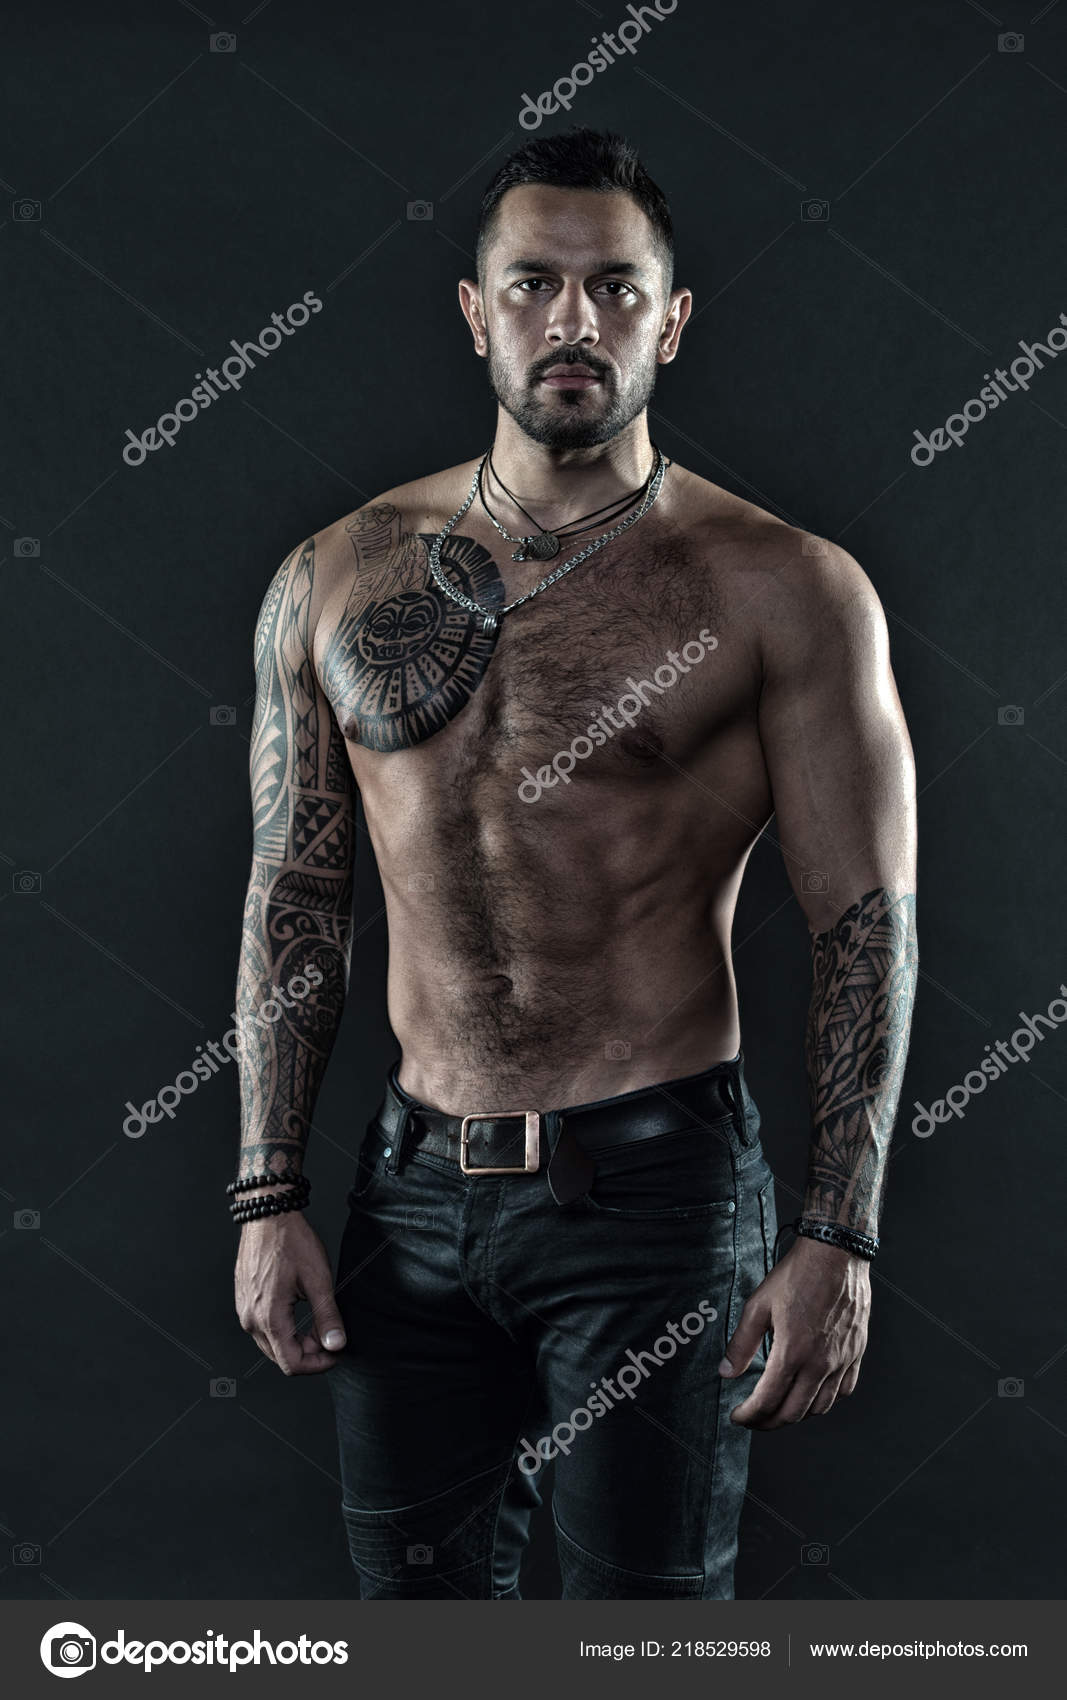 8ac073fad Tattoo art. Handsome fit man posing wearing in jeans with tattoo. Man  handsome shirtless muscular with ...